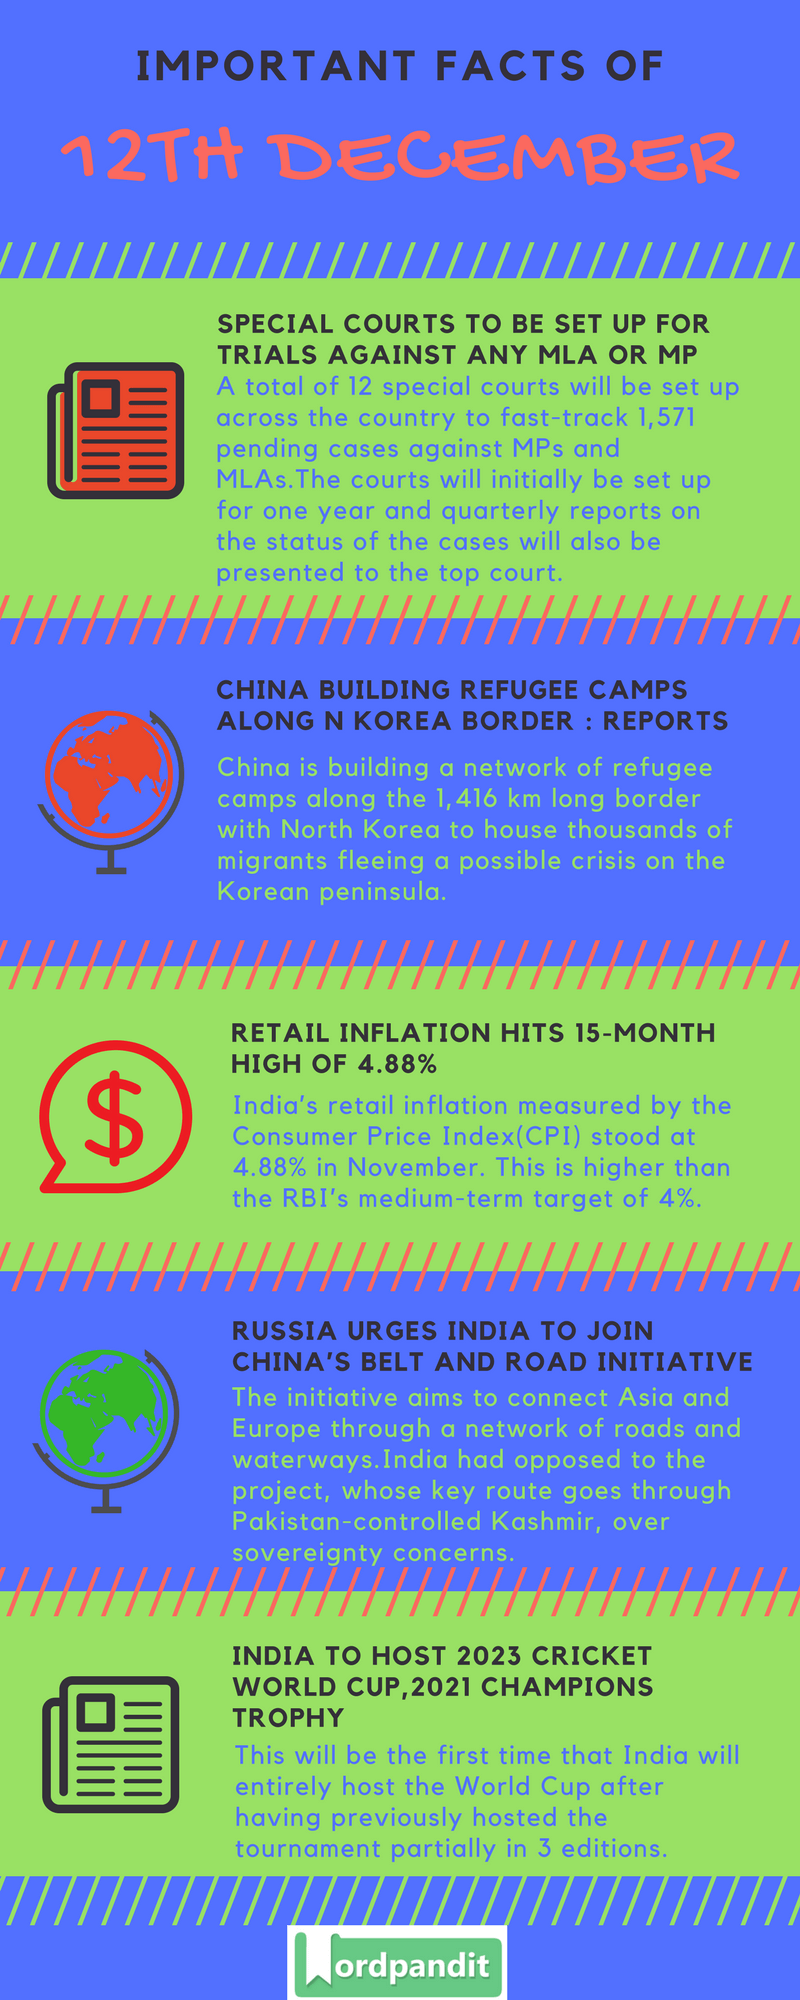 Daily-Current-Affairs-12-december-2017-Current-Affairs-Quiz-december-12-2017-Current-Affairs-Infographic